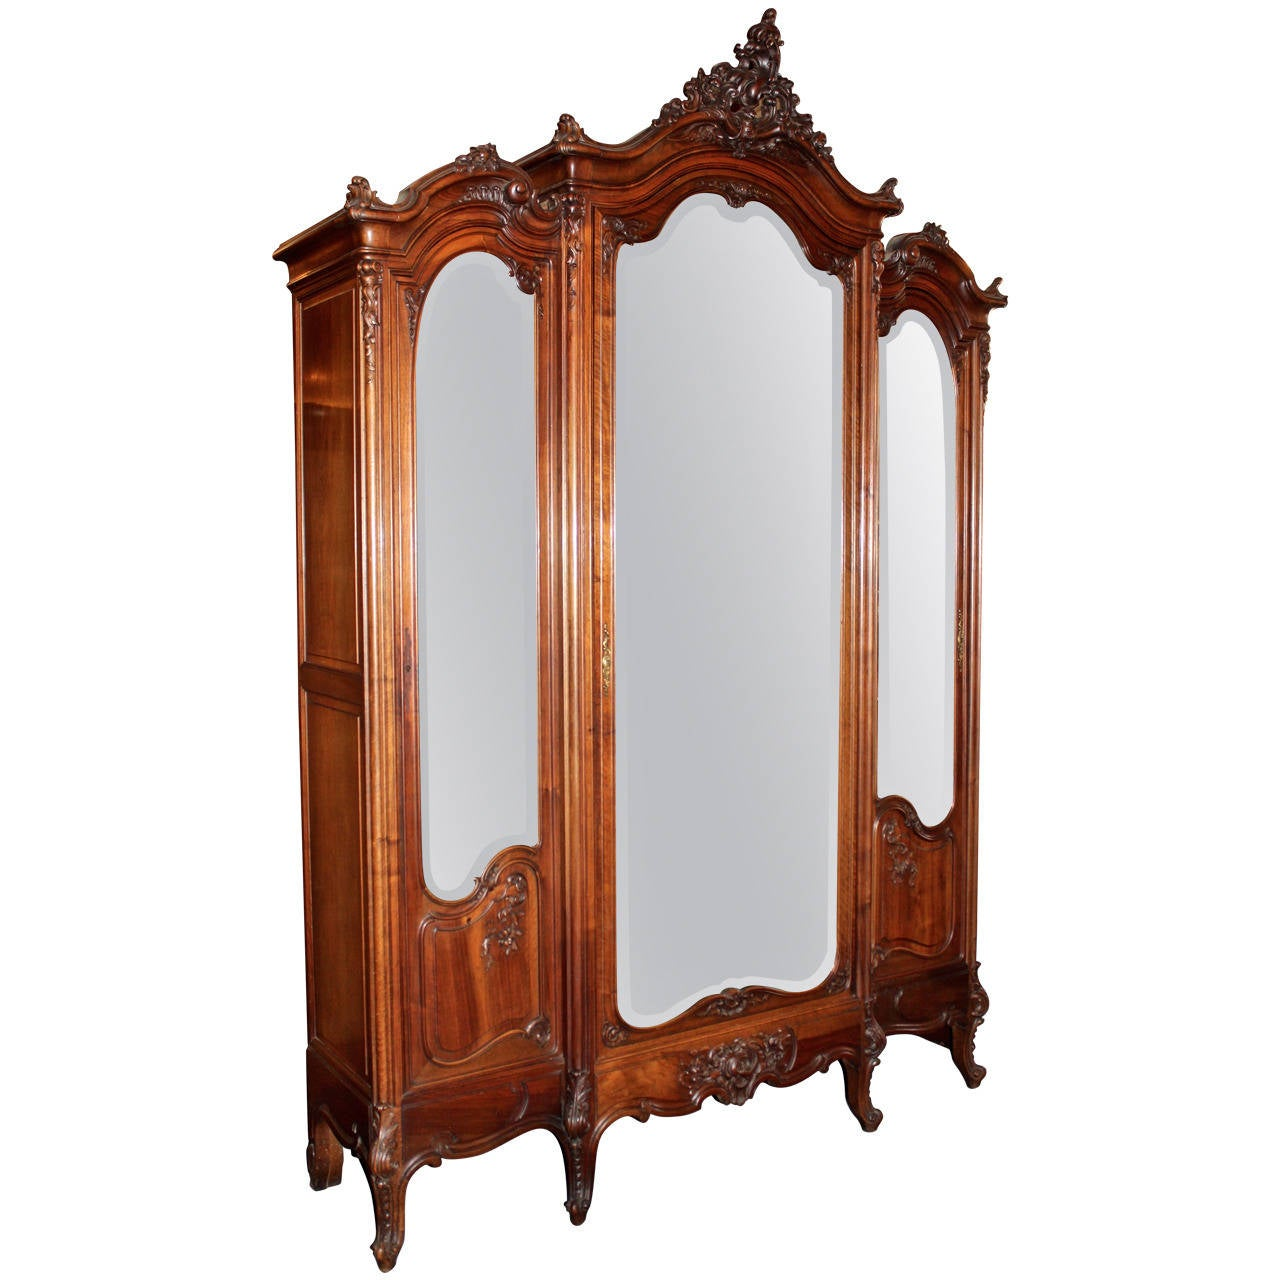 Louis XV French Mirrored Triple Door Armoire For Sale  sc 1 st  1stDibs & Louis XV French Mirrored Triple Door Armoire For Sale at 1stdibs